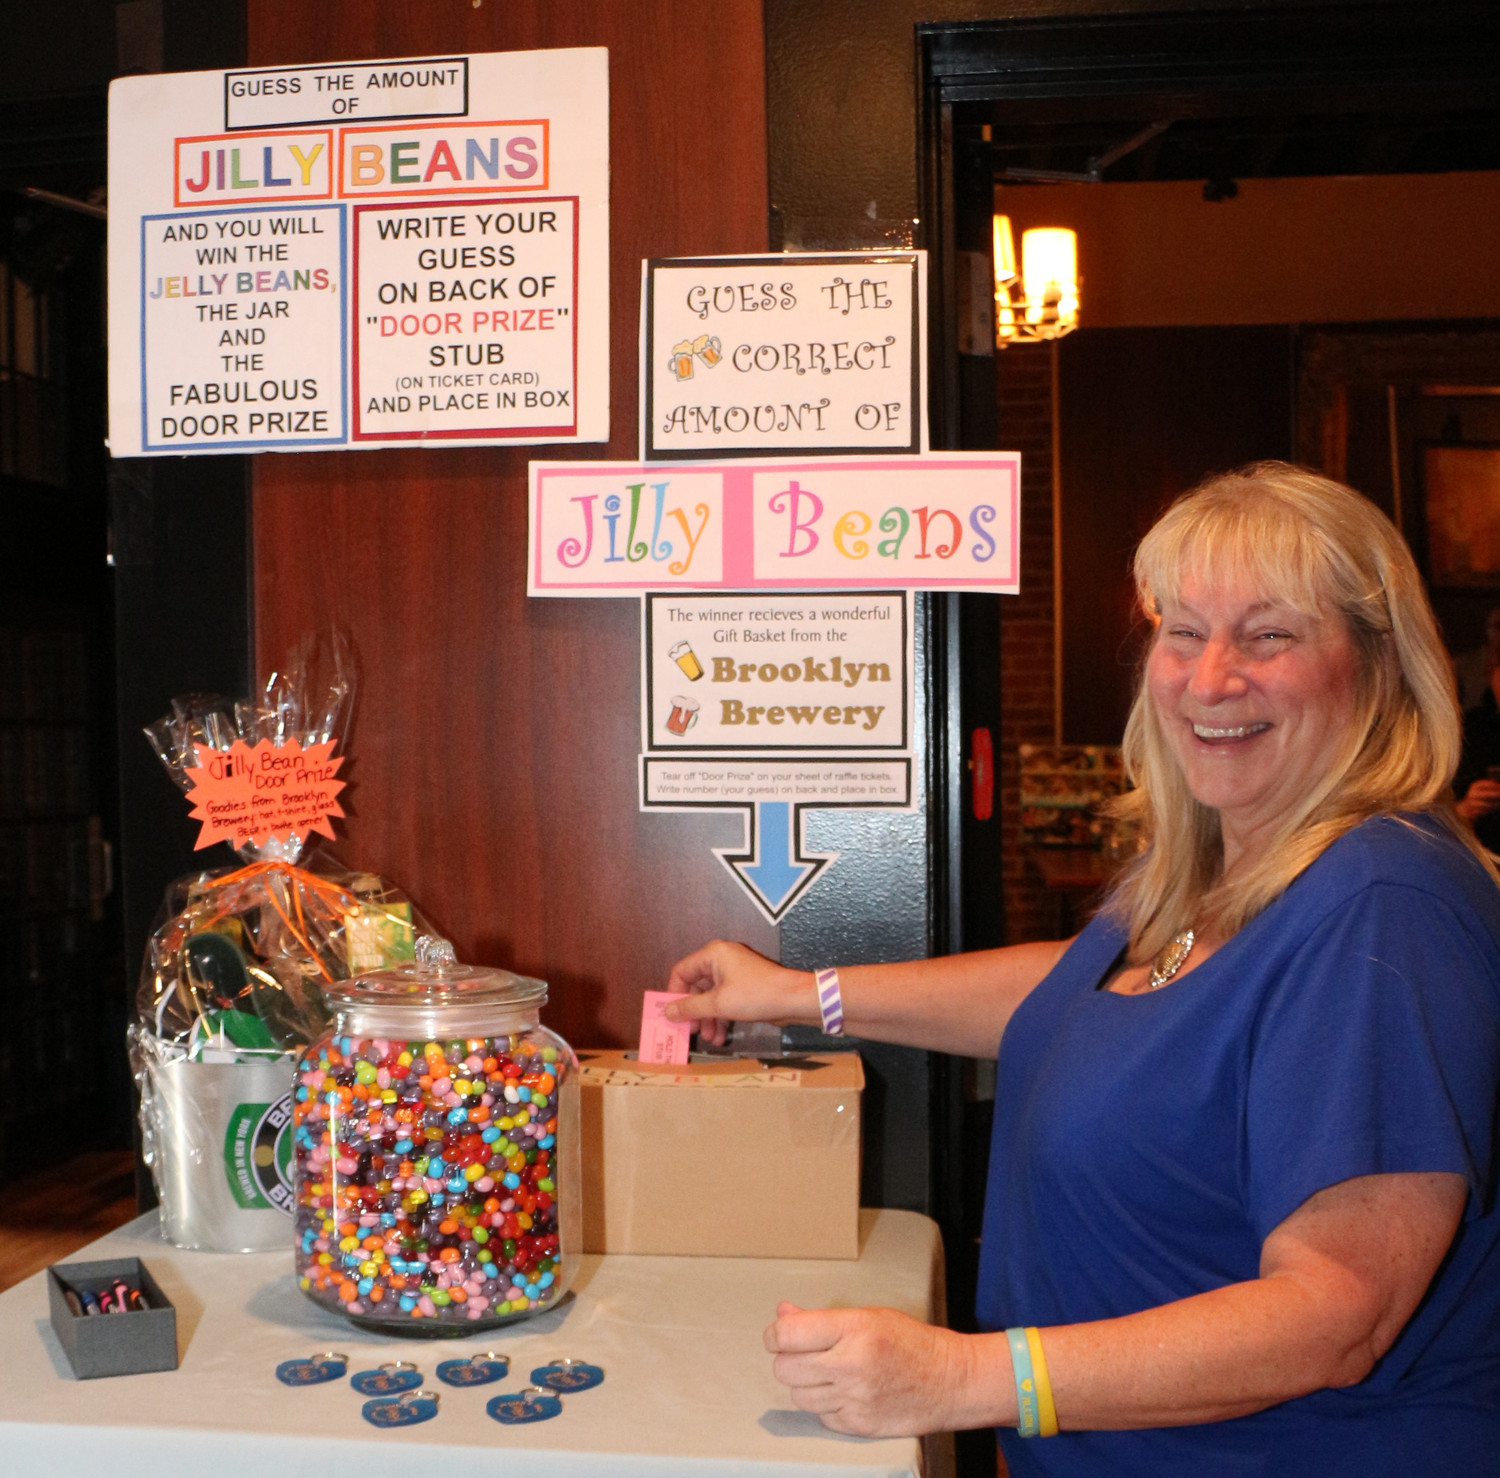 Patti Scaduto, Jillian's aunt, created the Jilly Bean Jar as part of the fundraising.